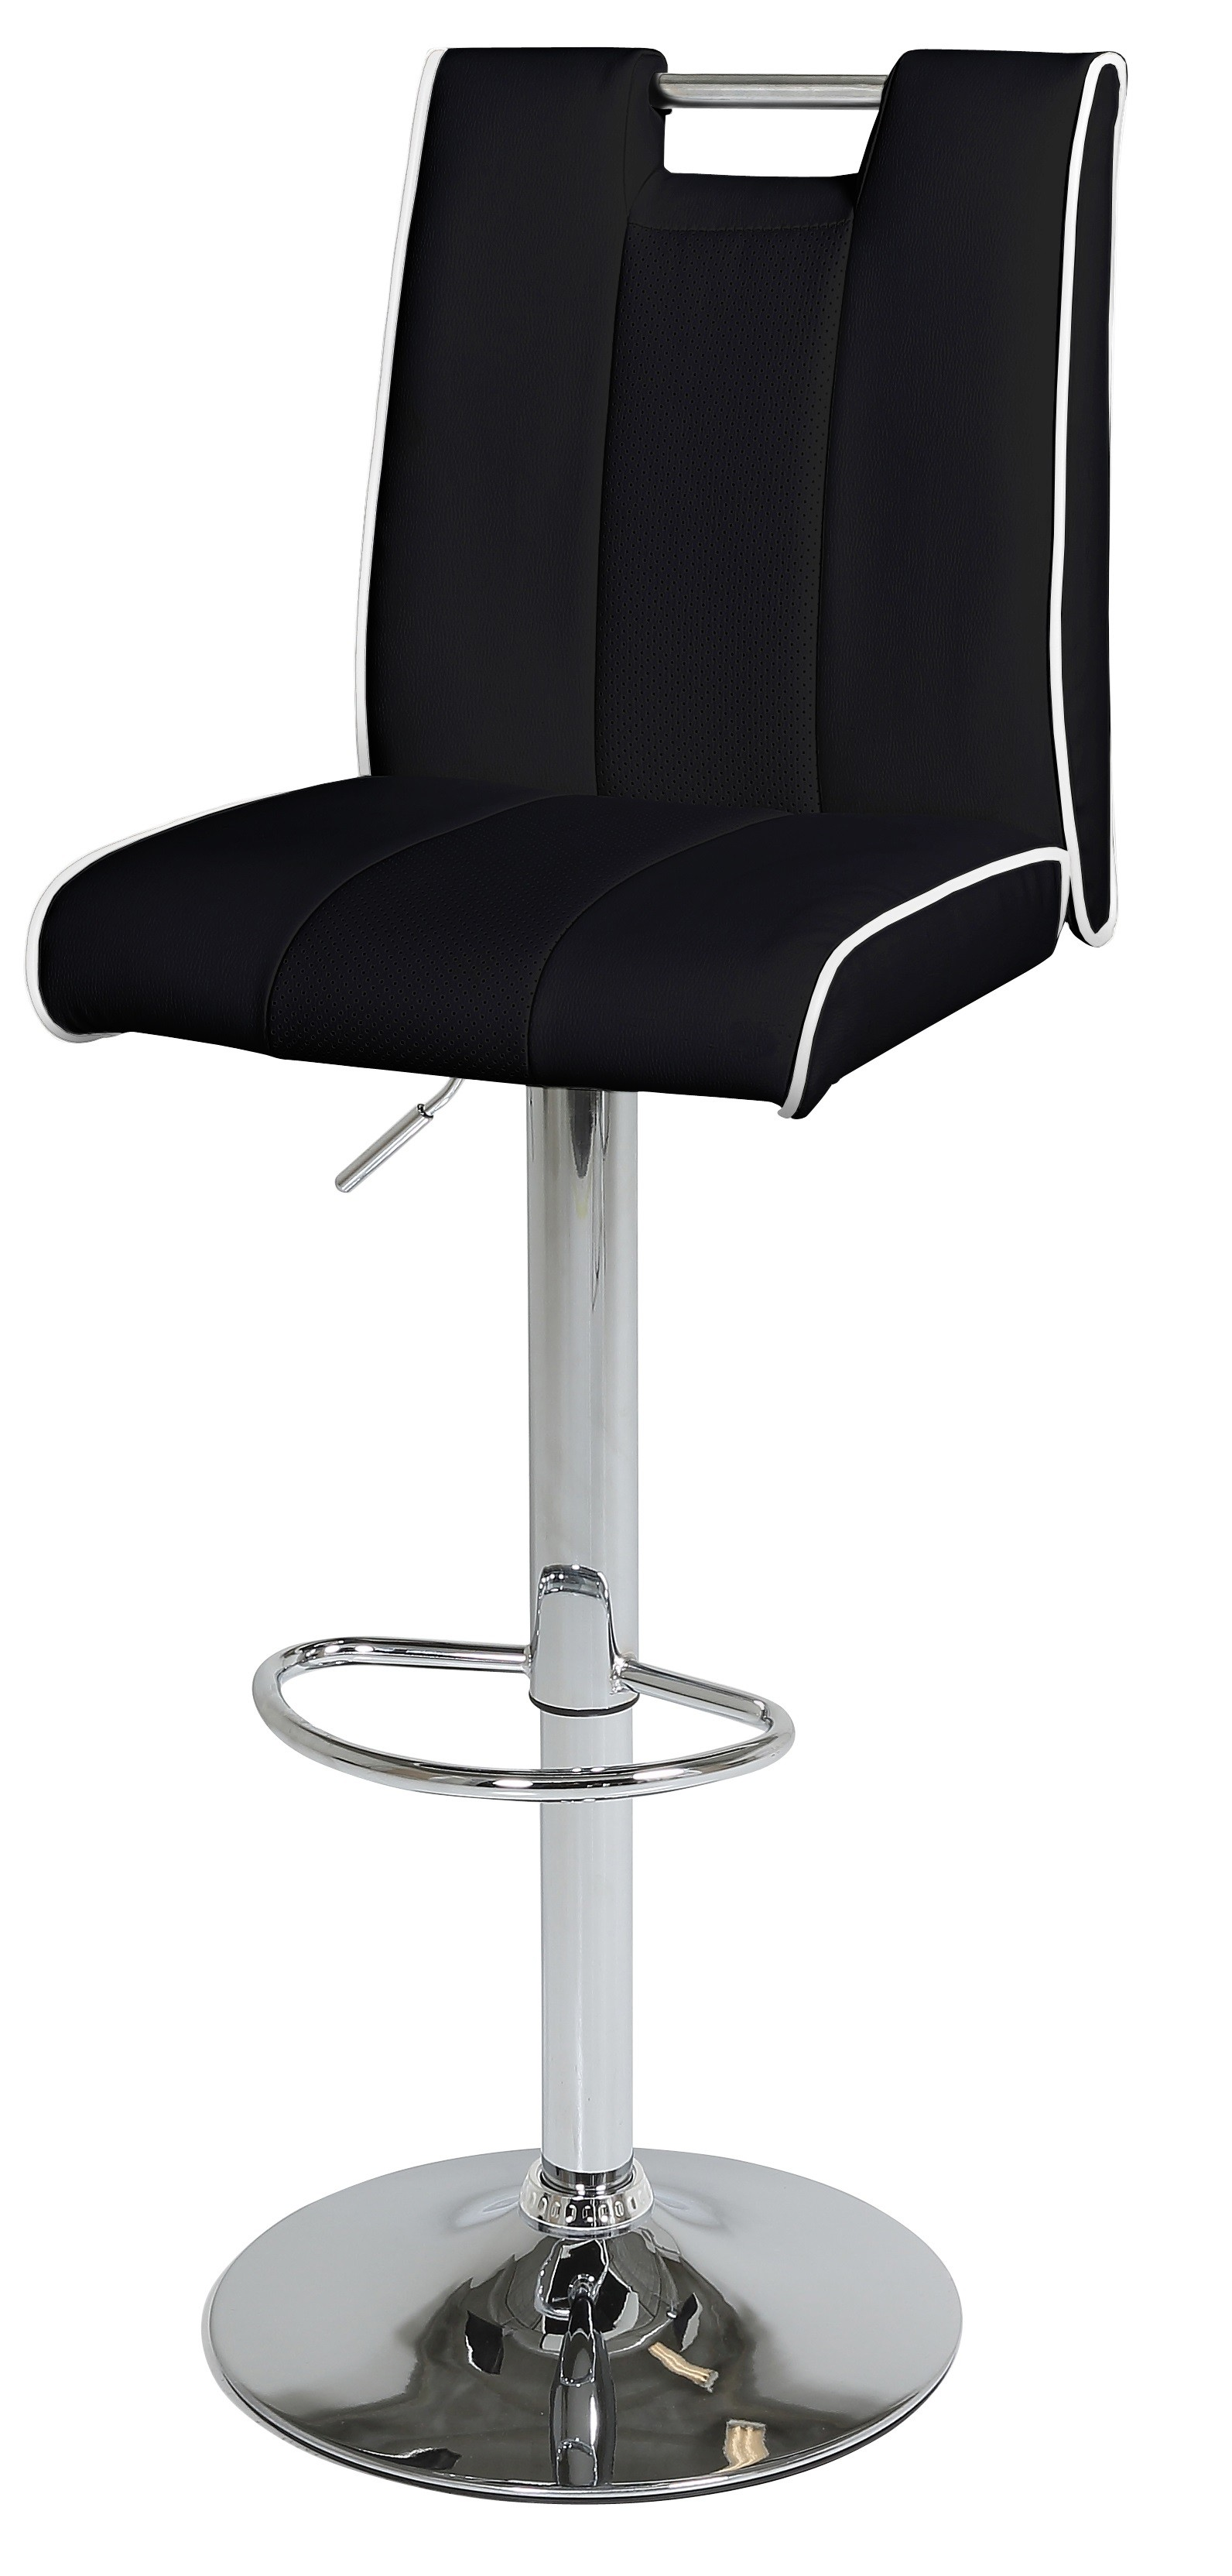 tabouret de bar design pas cher tabouret de bar design et pas cher miliboo lovely chaise de bar. Black Bedroom Furniture Sets. Home Design Ideas